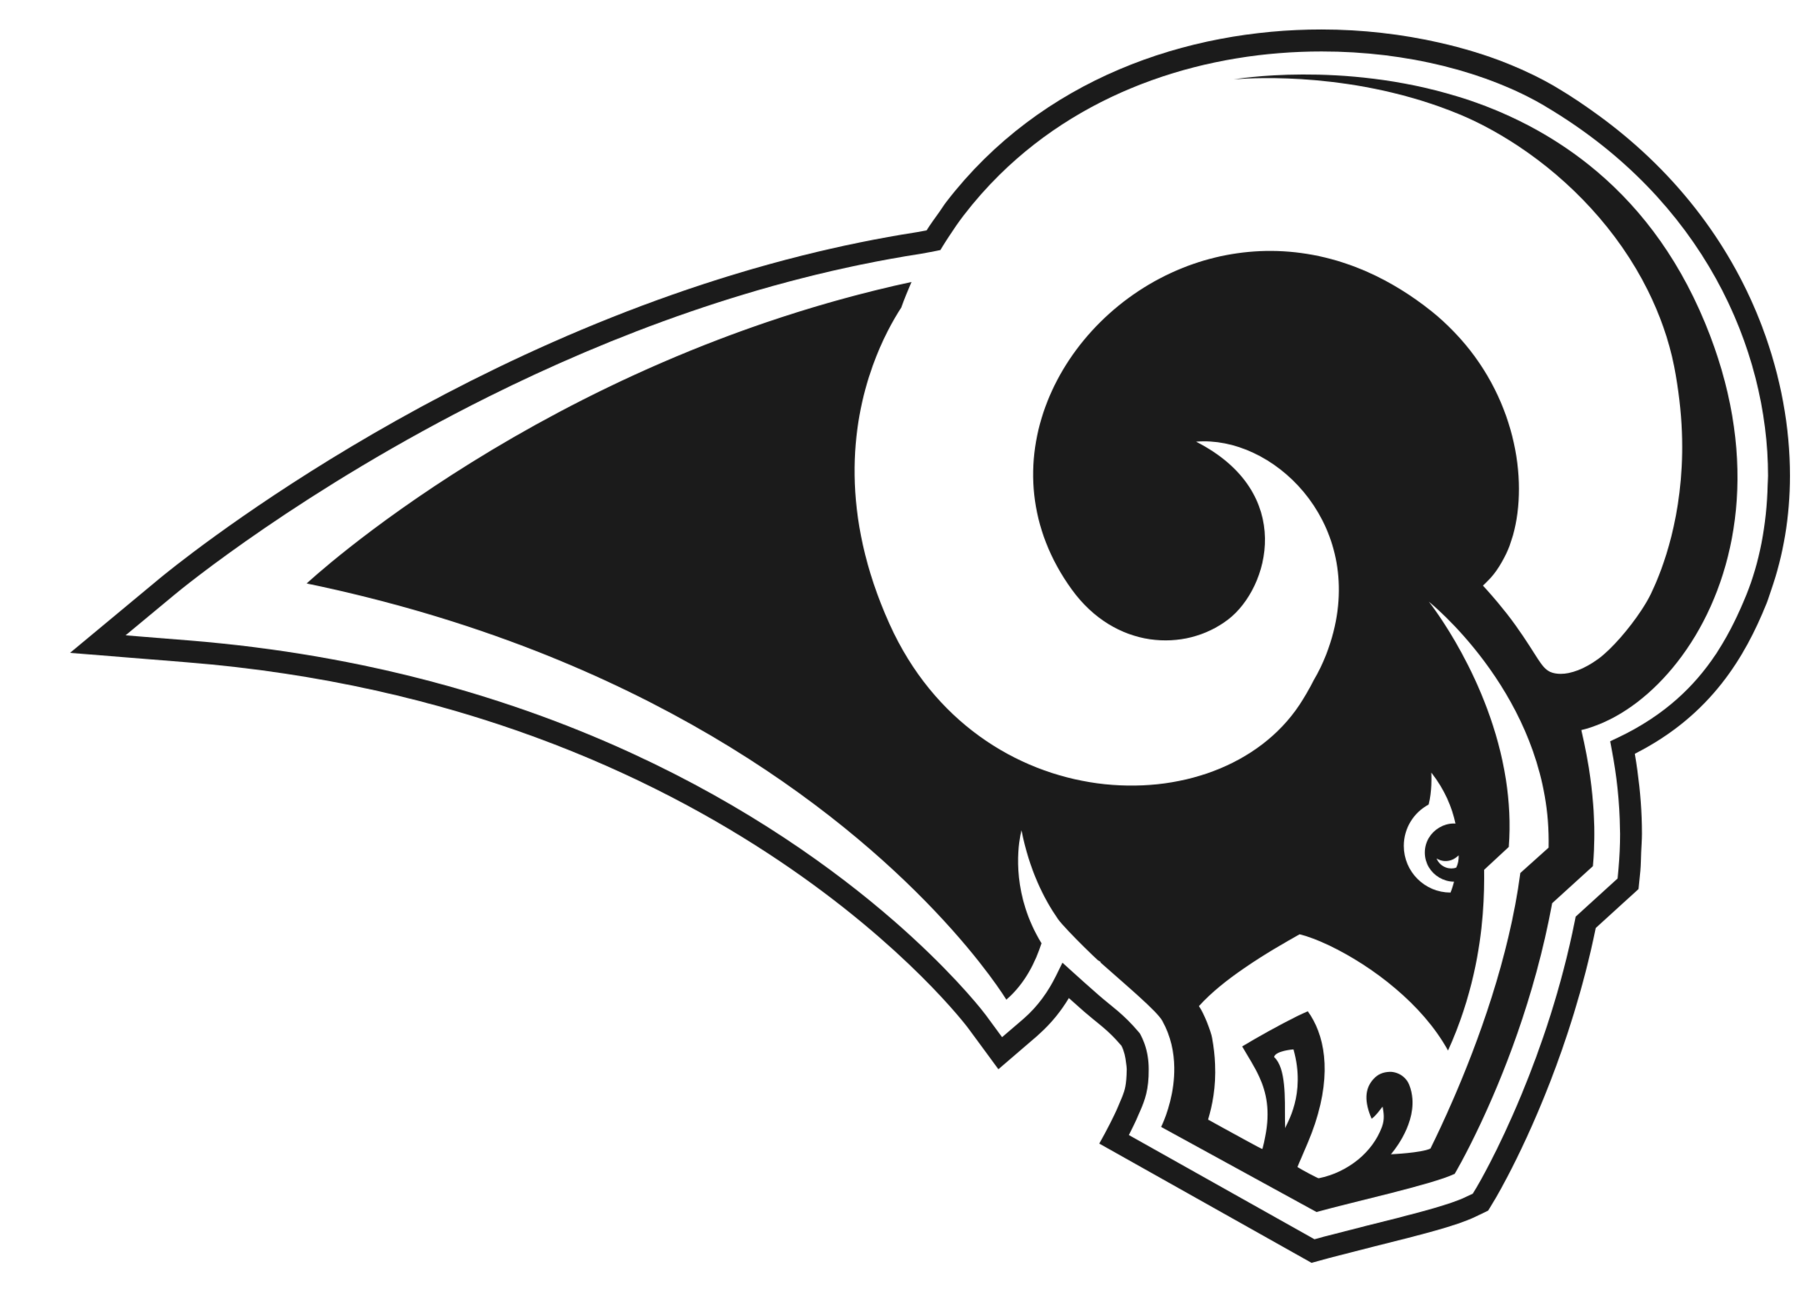 Ram logo clipart picture black and white download Los Angeles Rams Logo 2018 Clipart - Full Size Clipart ... picture black and white download